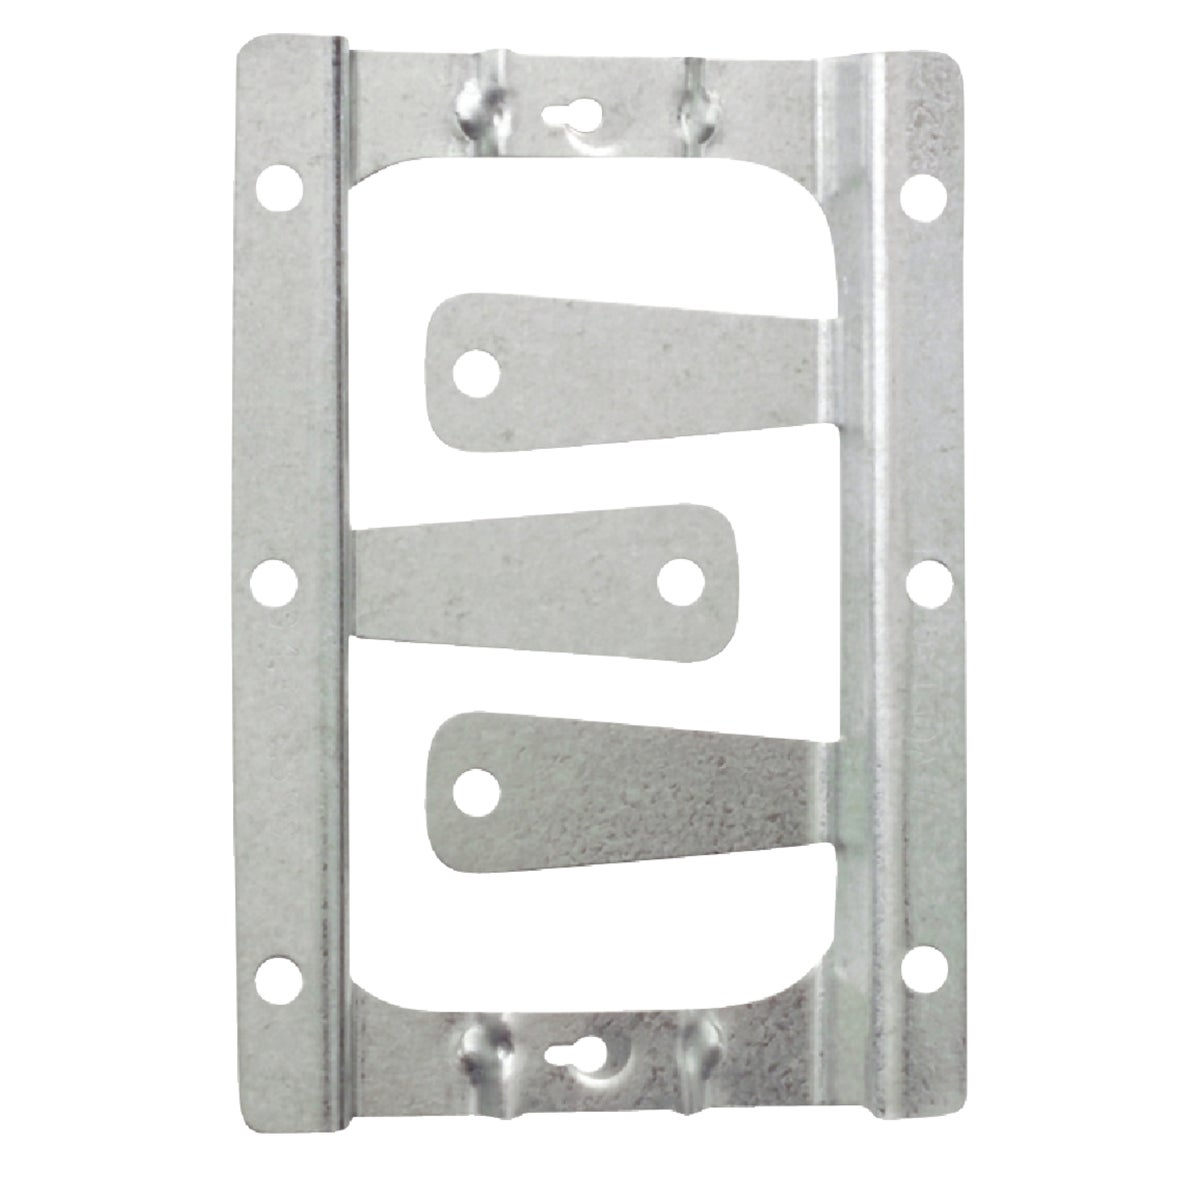 LOW VOLTAGE PLATE - SSFSLV by Thomas & Betts